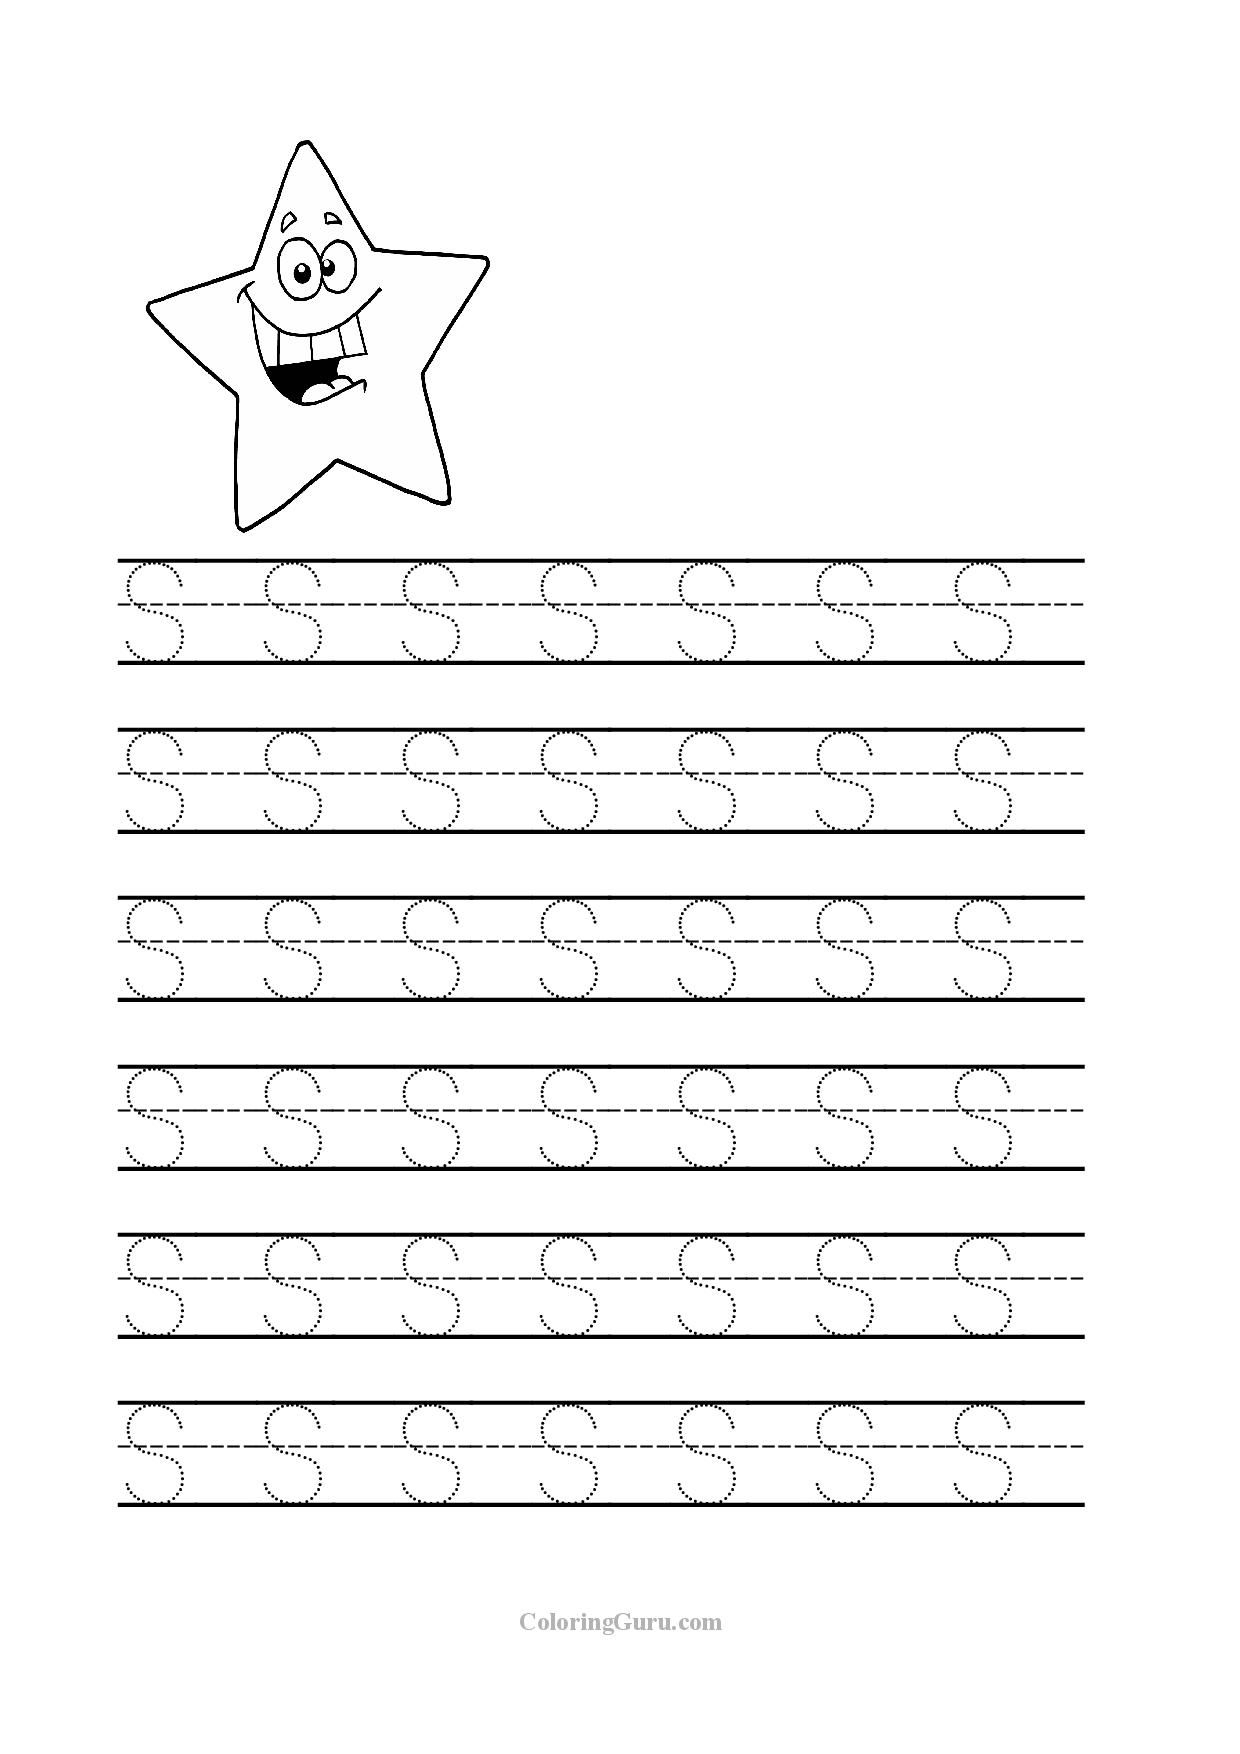 Free Printable Tracing Letter S Worksheets For Preschool within Printable Tracing Letters For Pre K